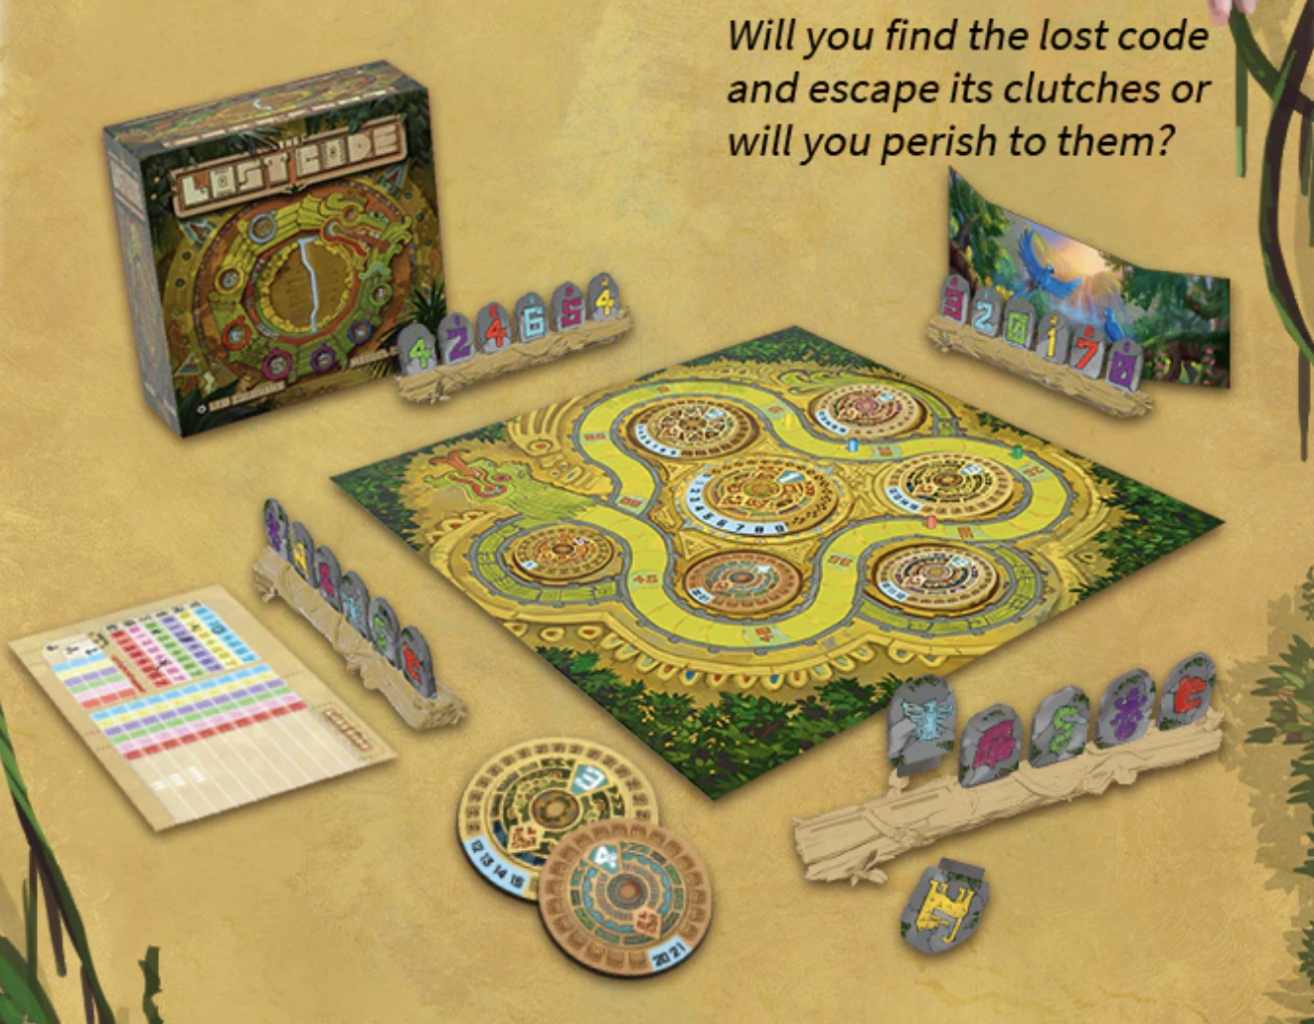 The Lost Code game set up